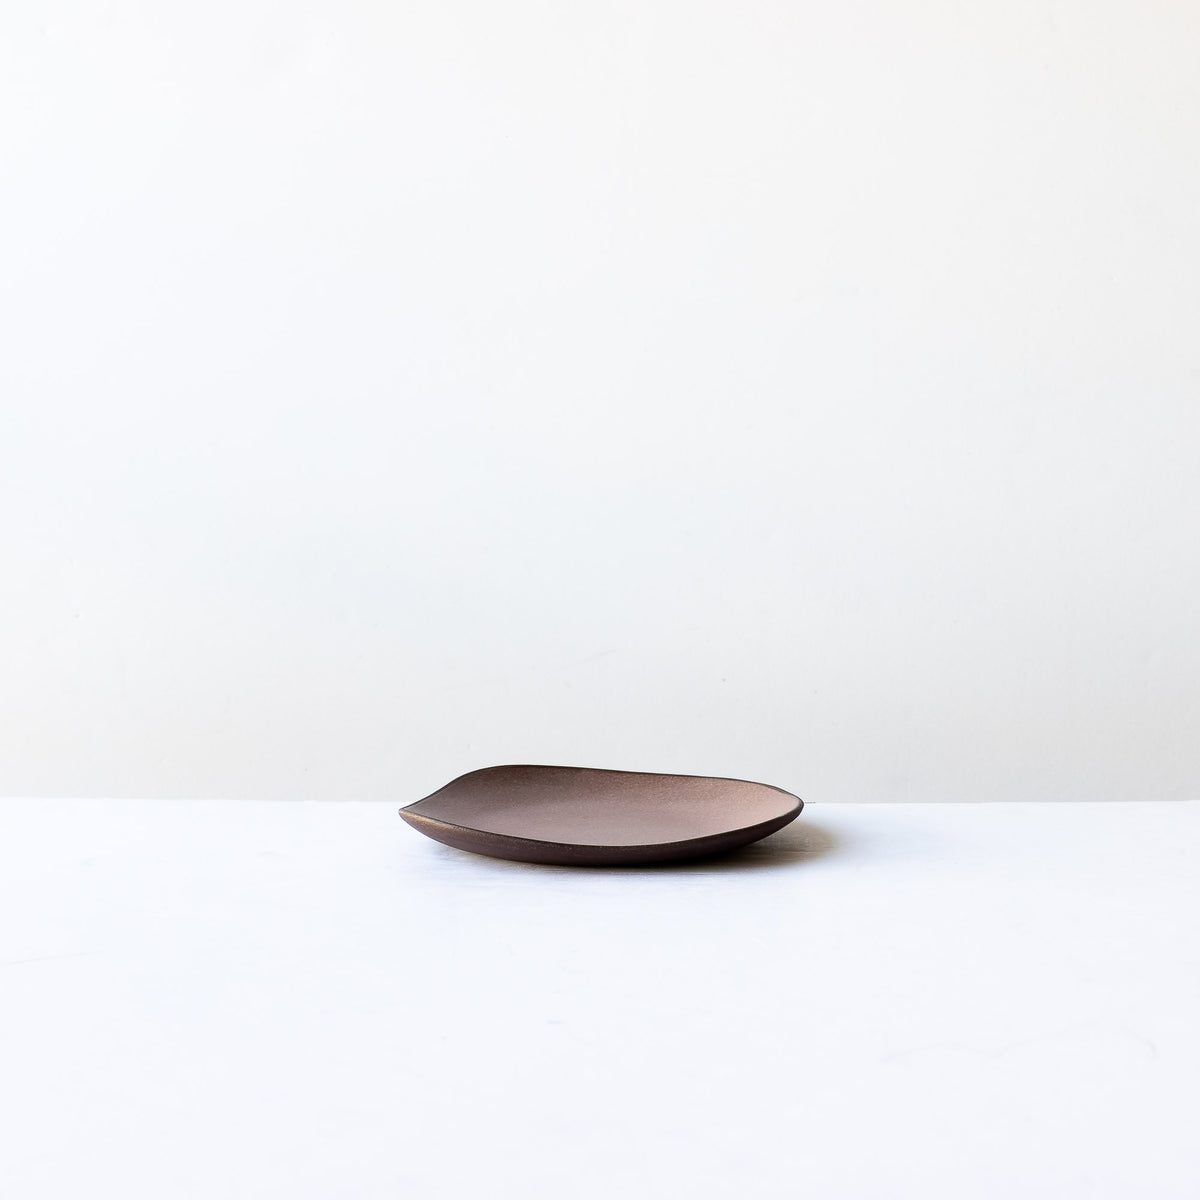 Side View - Pink Handcrafted Organic Shaped Small Stoneware Plate - Sold by Chic & Basta